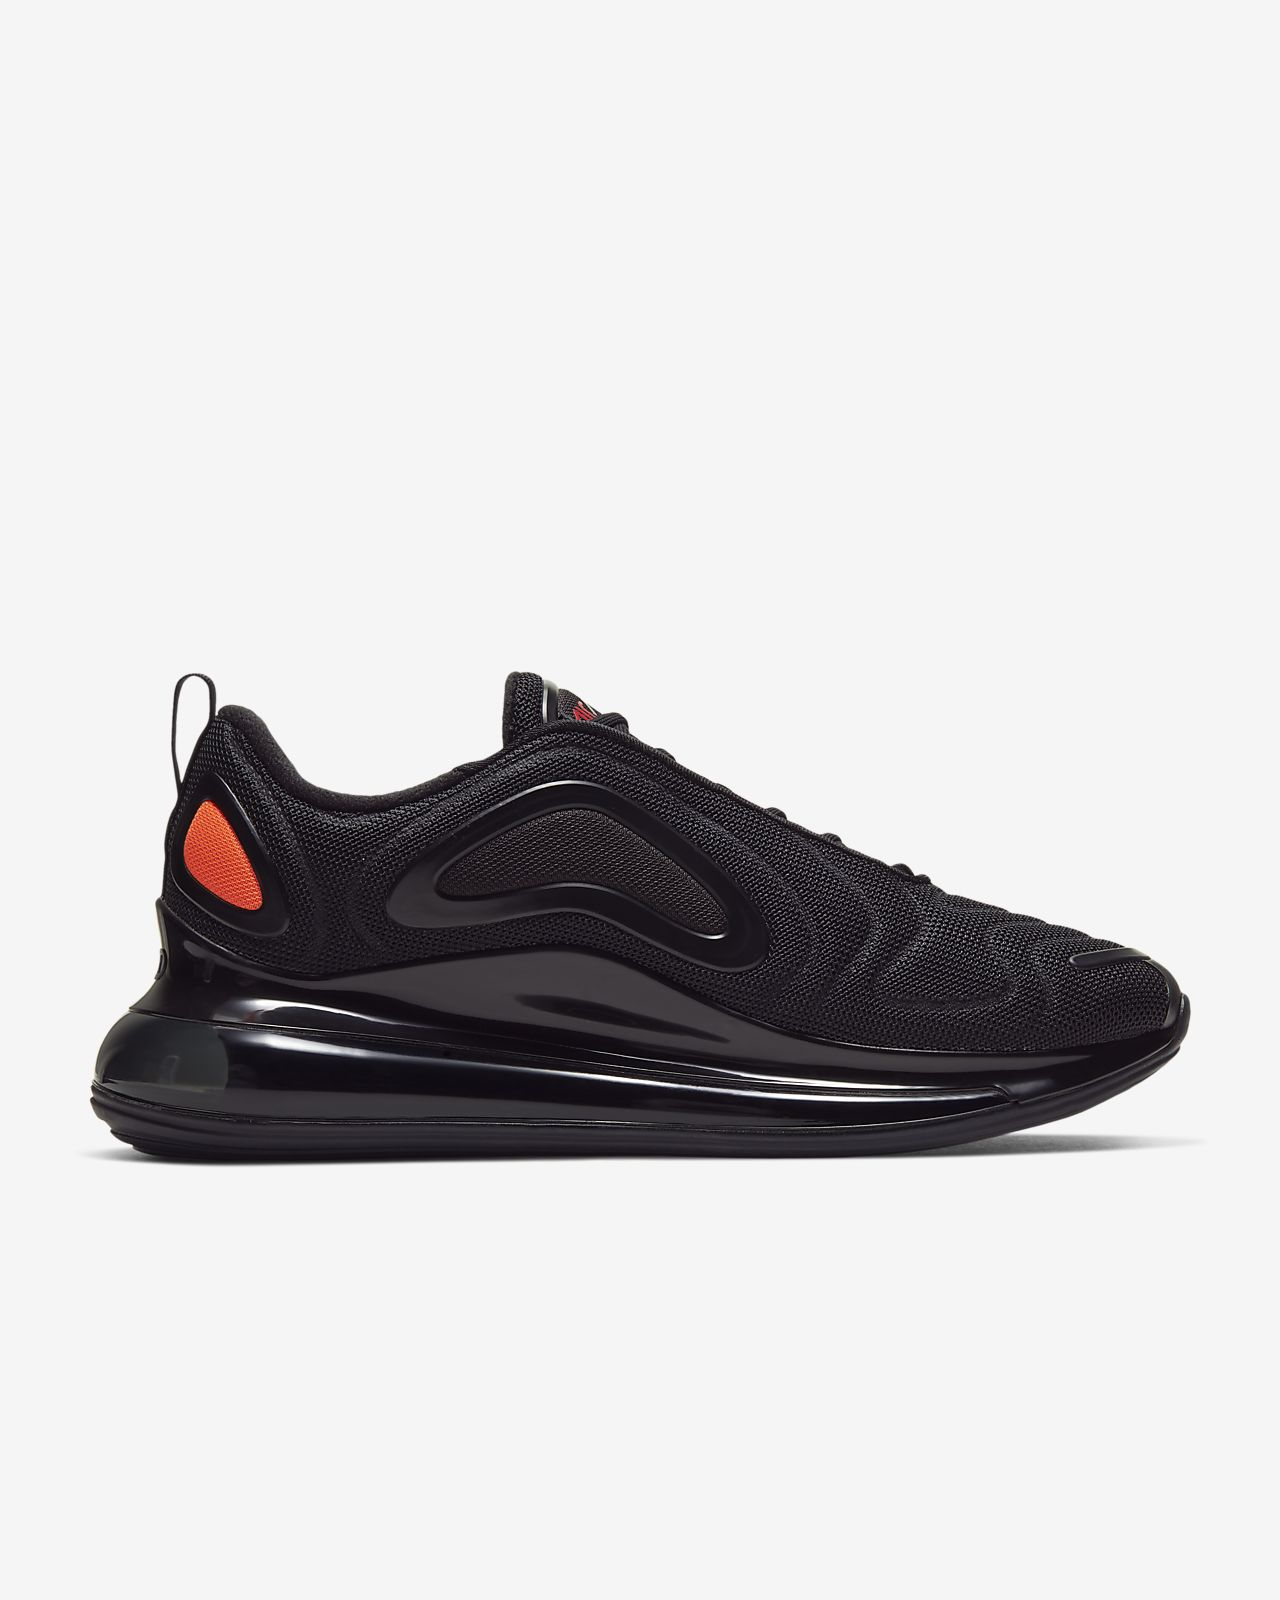 Nike Air Max 720 Sneakers BlackHyper CrimsonUniversity Red